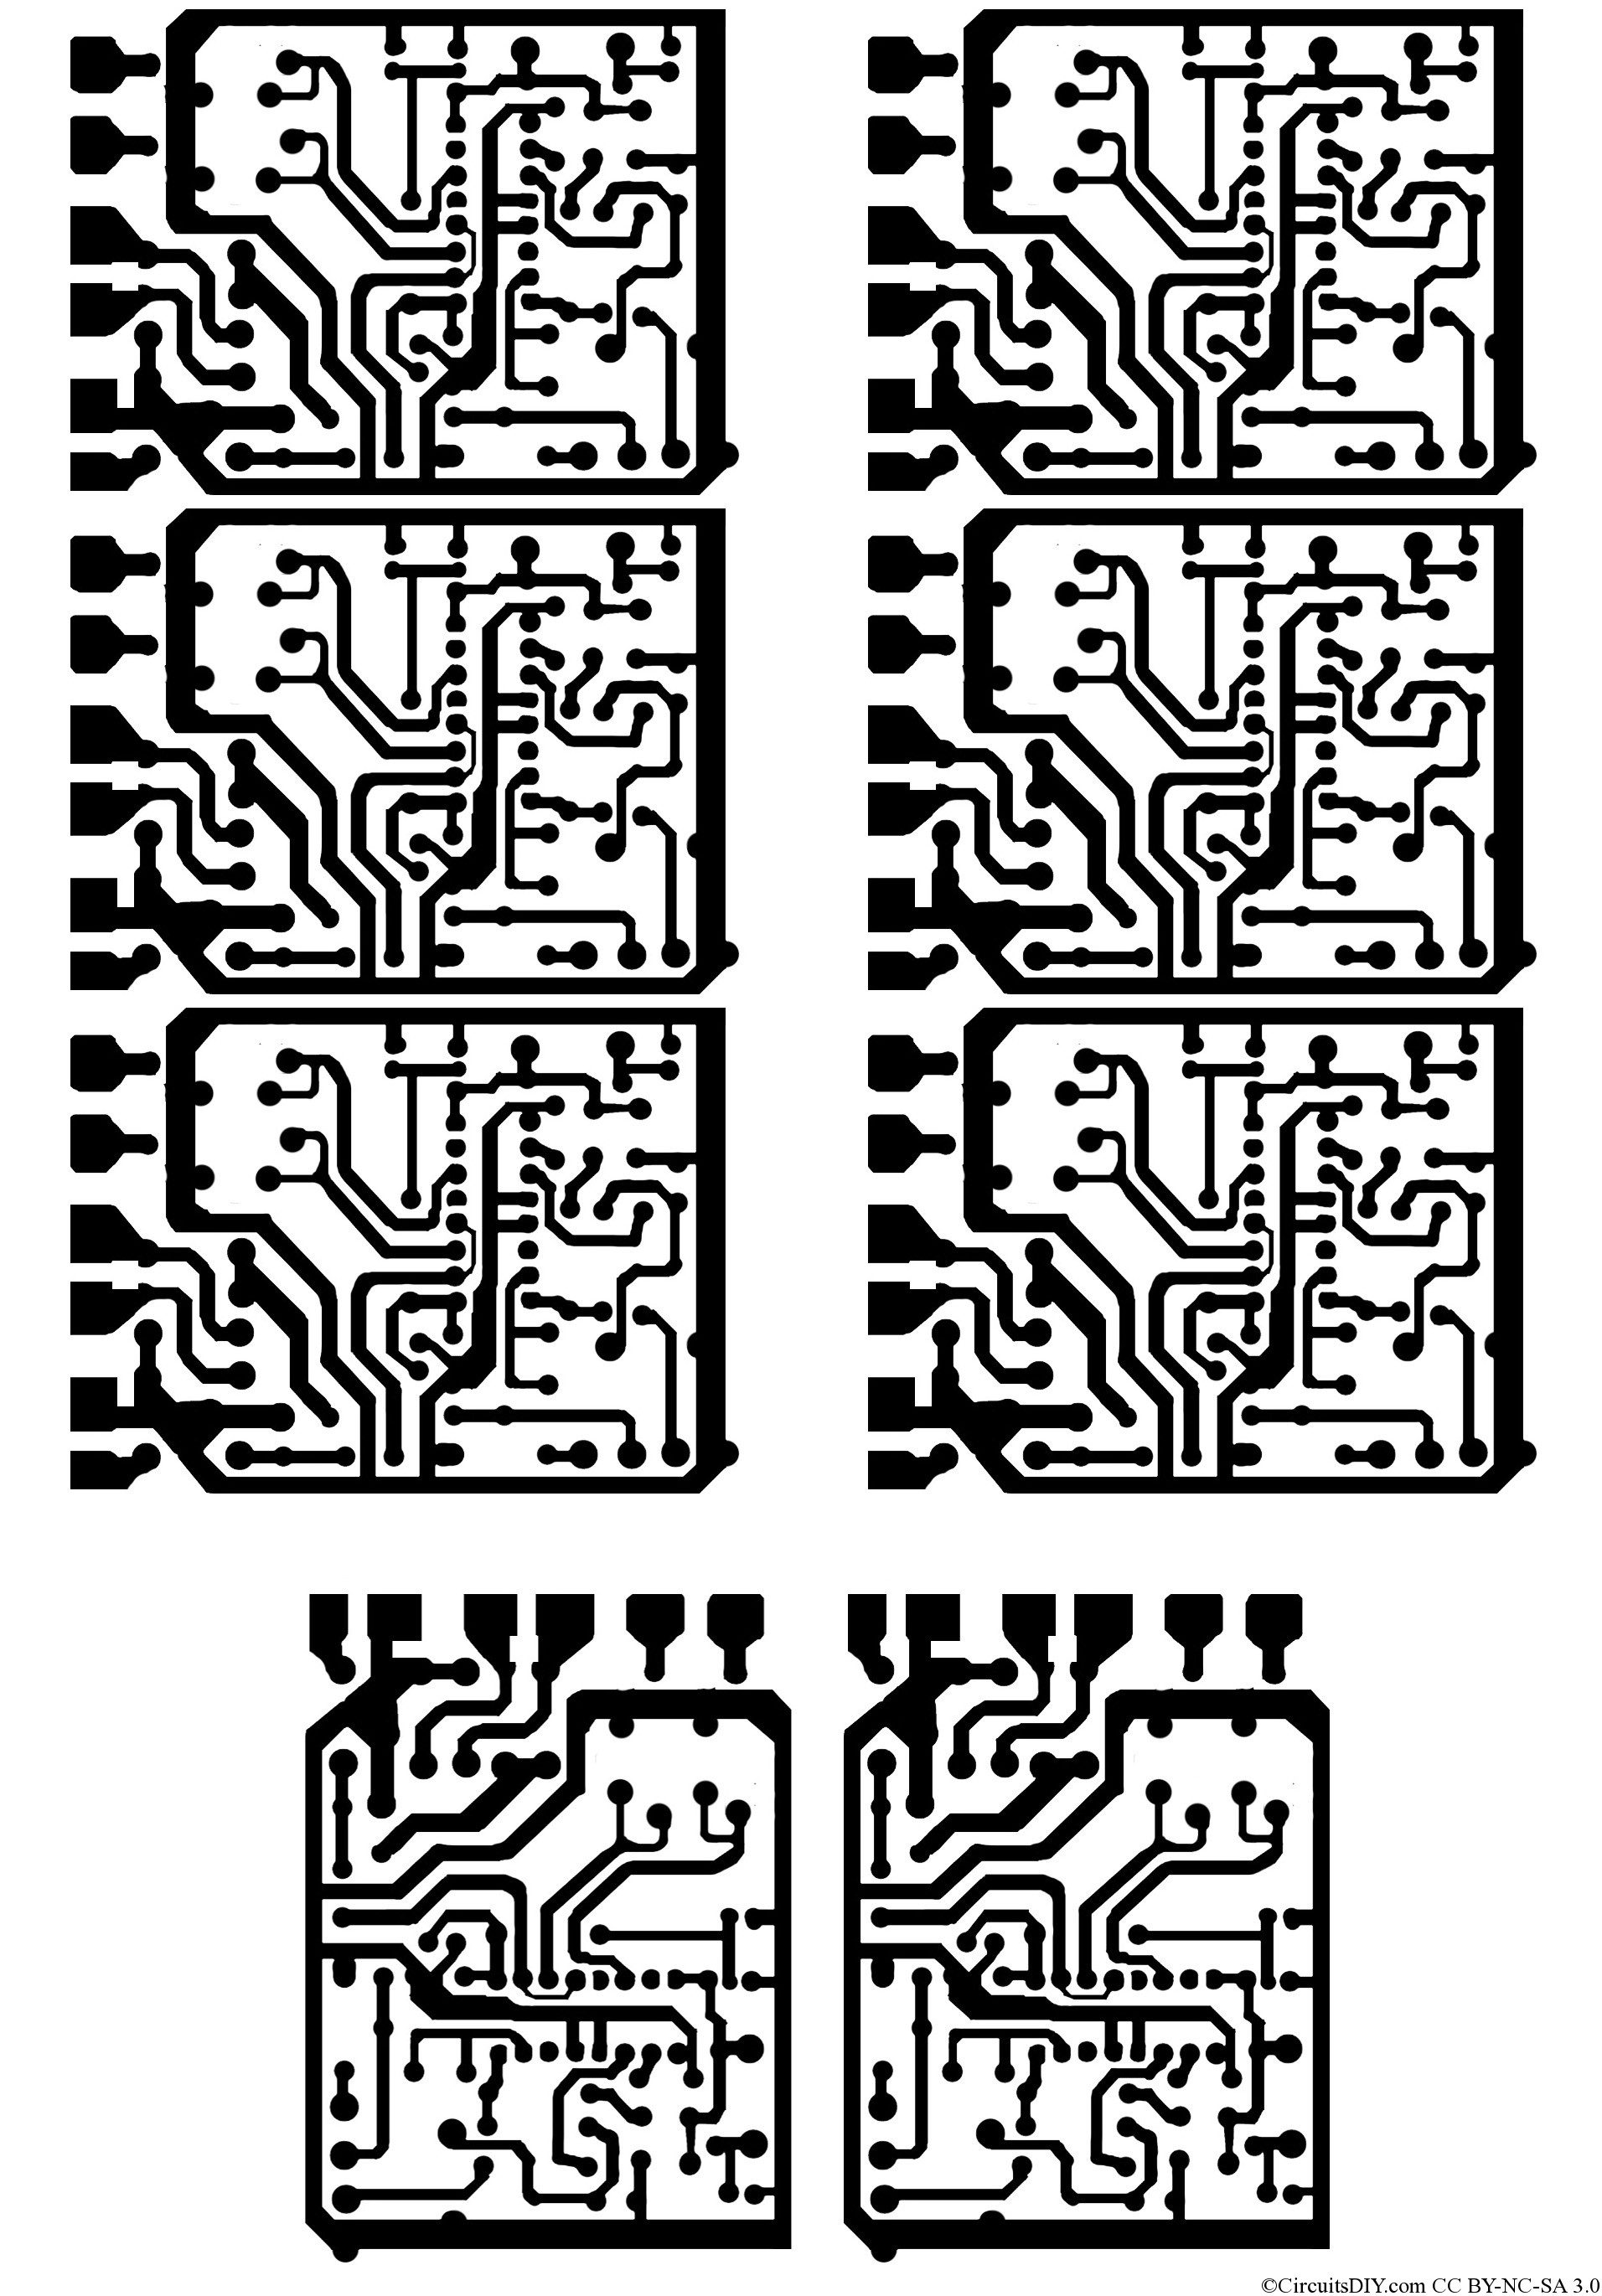 Wiring Machine 500w Mosfet Power Inverter From 12v To 110v 220v Circuit Board Download Pcb Layout File Below Print It In A A4 Size